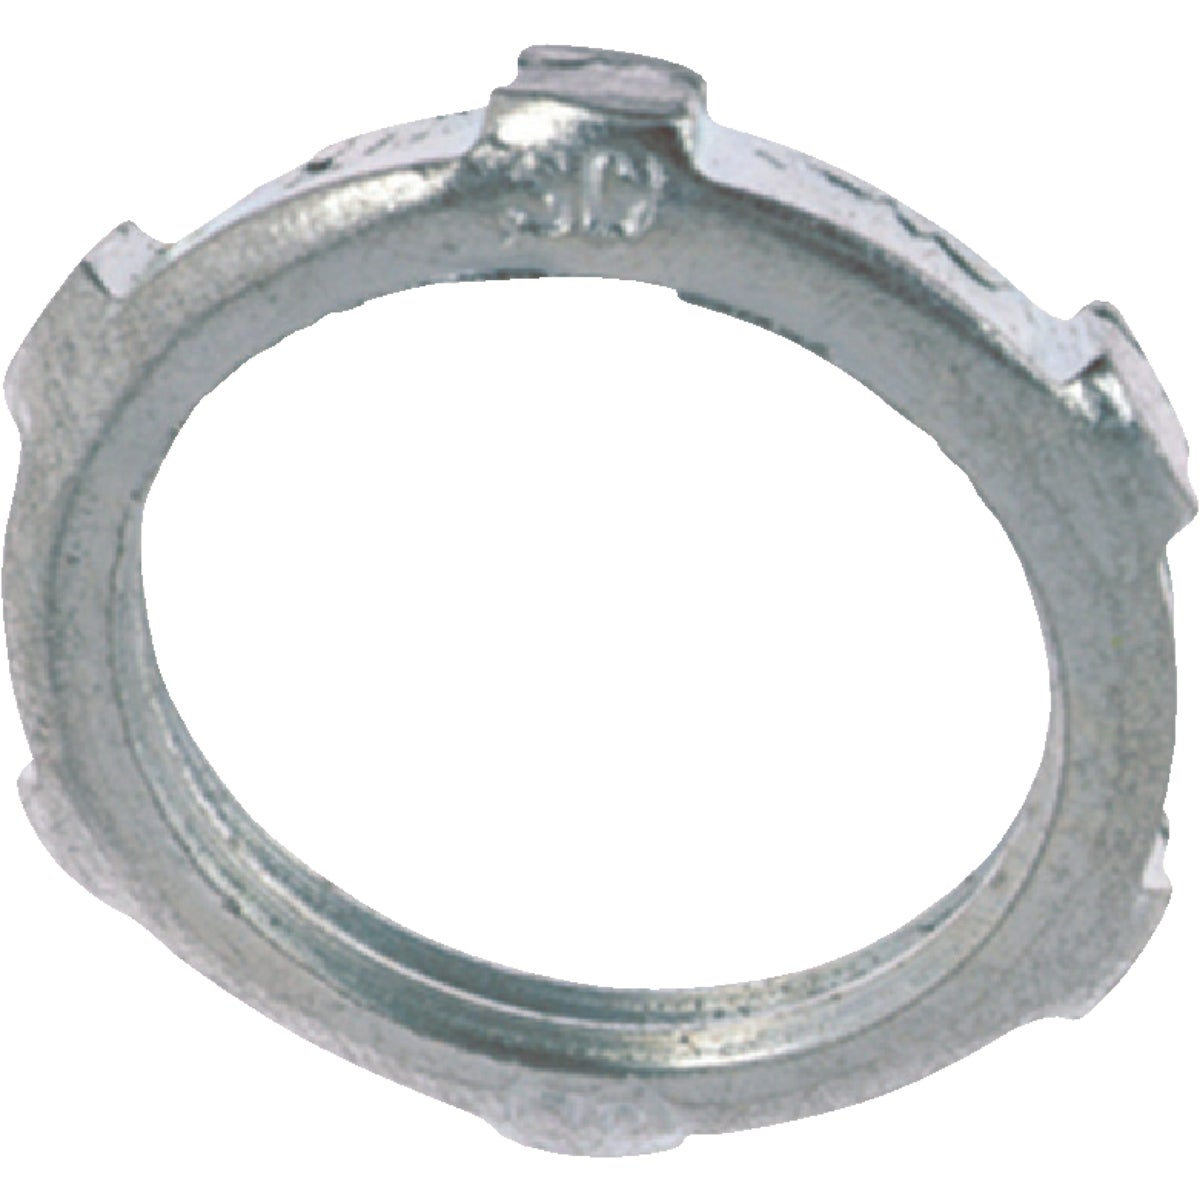 "3PK 1/2"" LOCKNUT - LN1013 by Thomas & Betts"